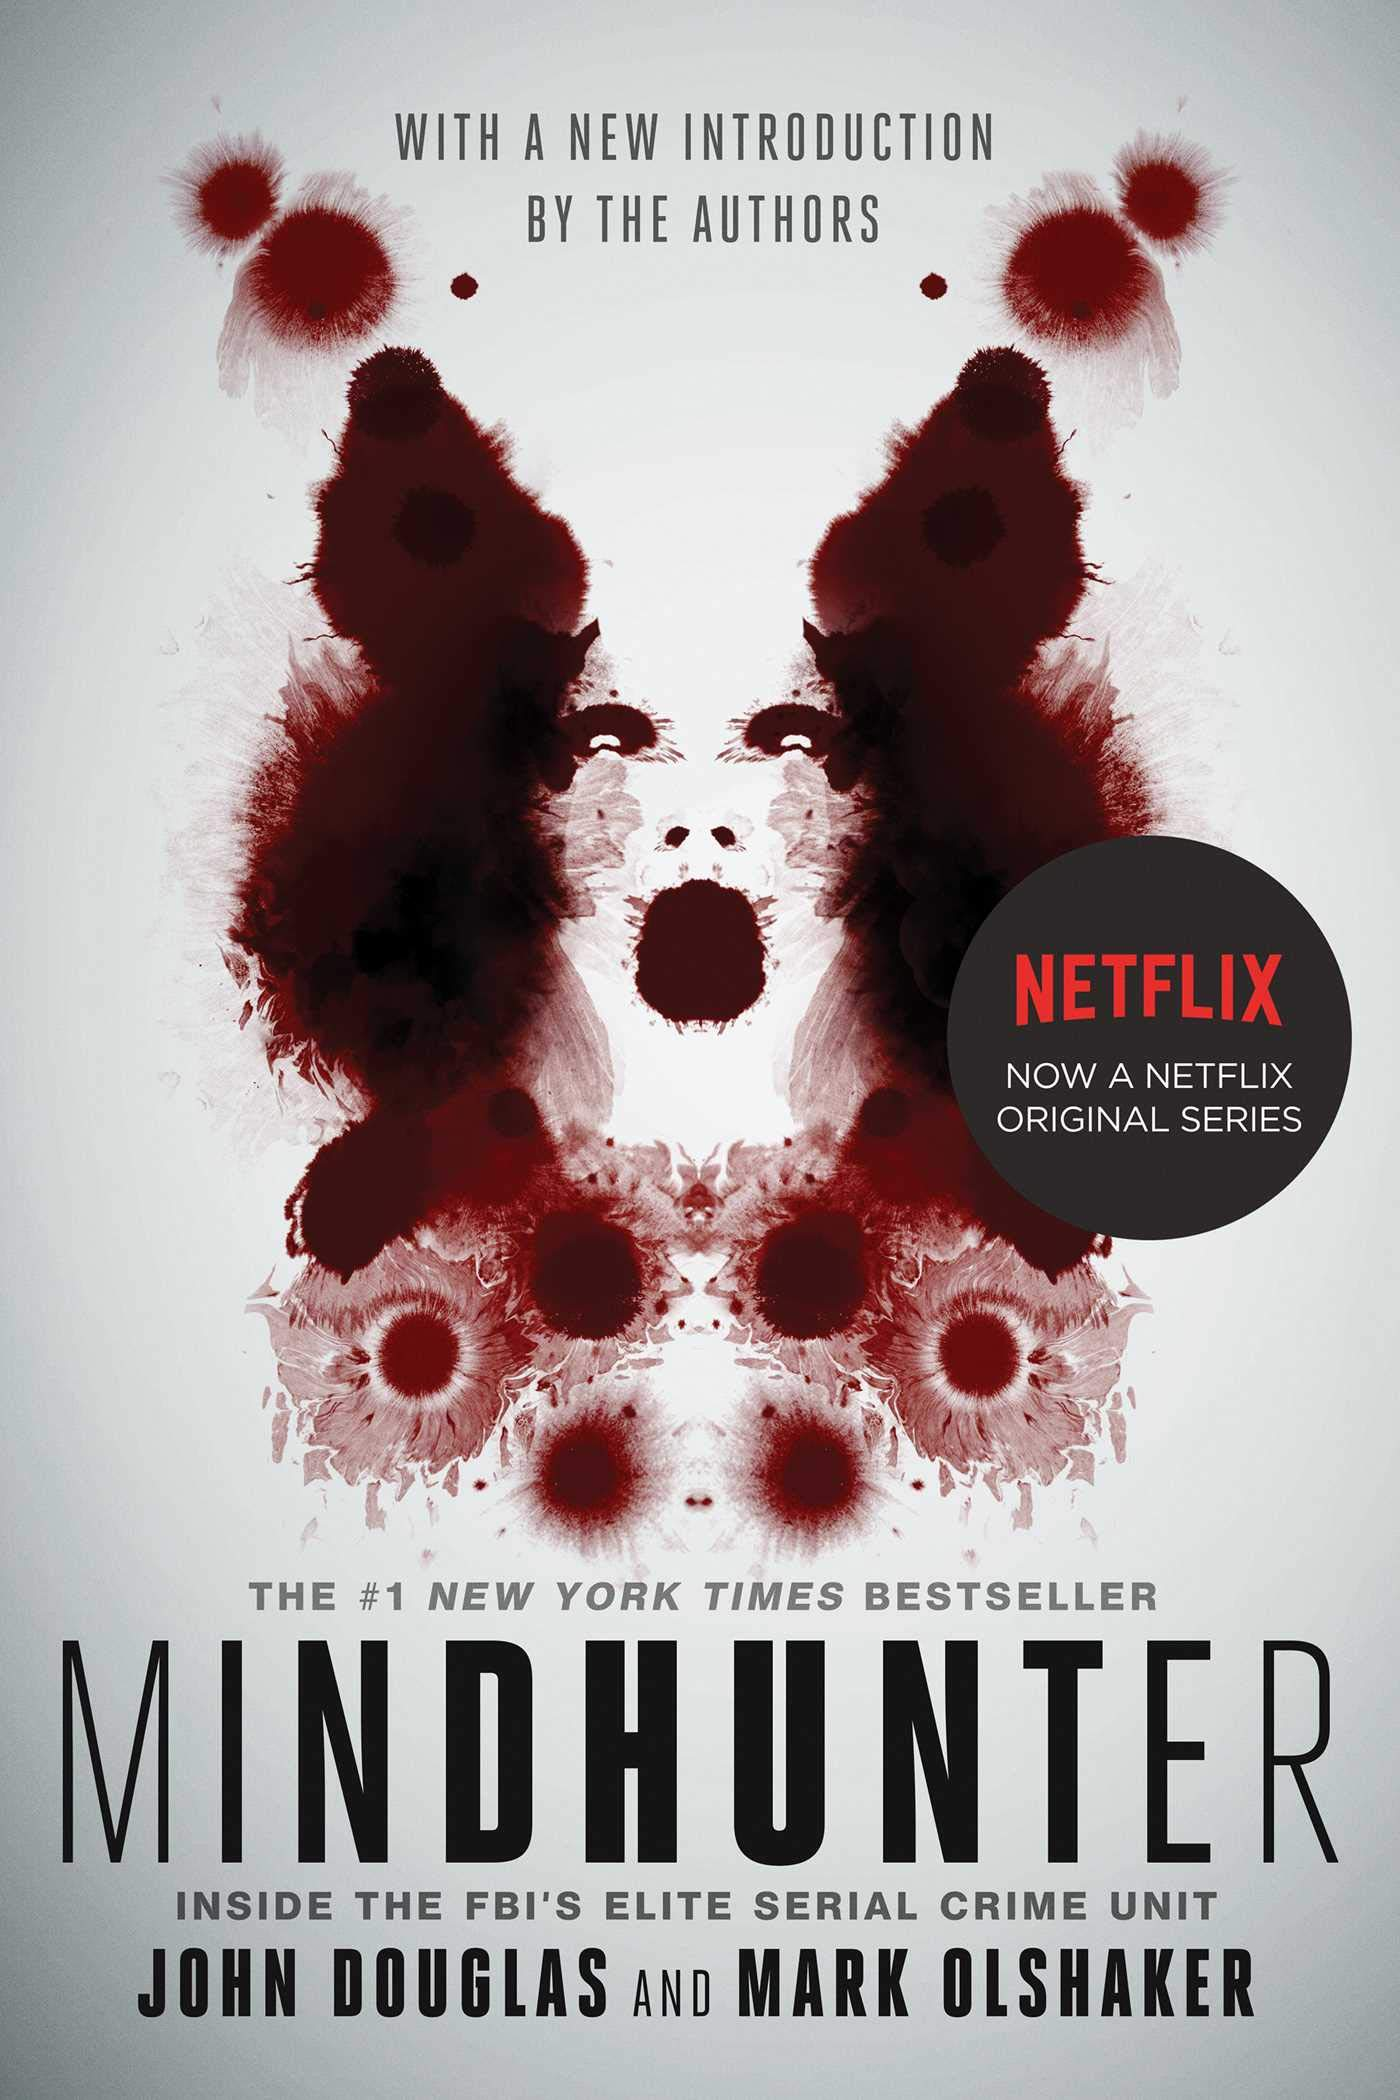 mindhunter-book-cover.jpg